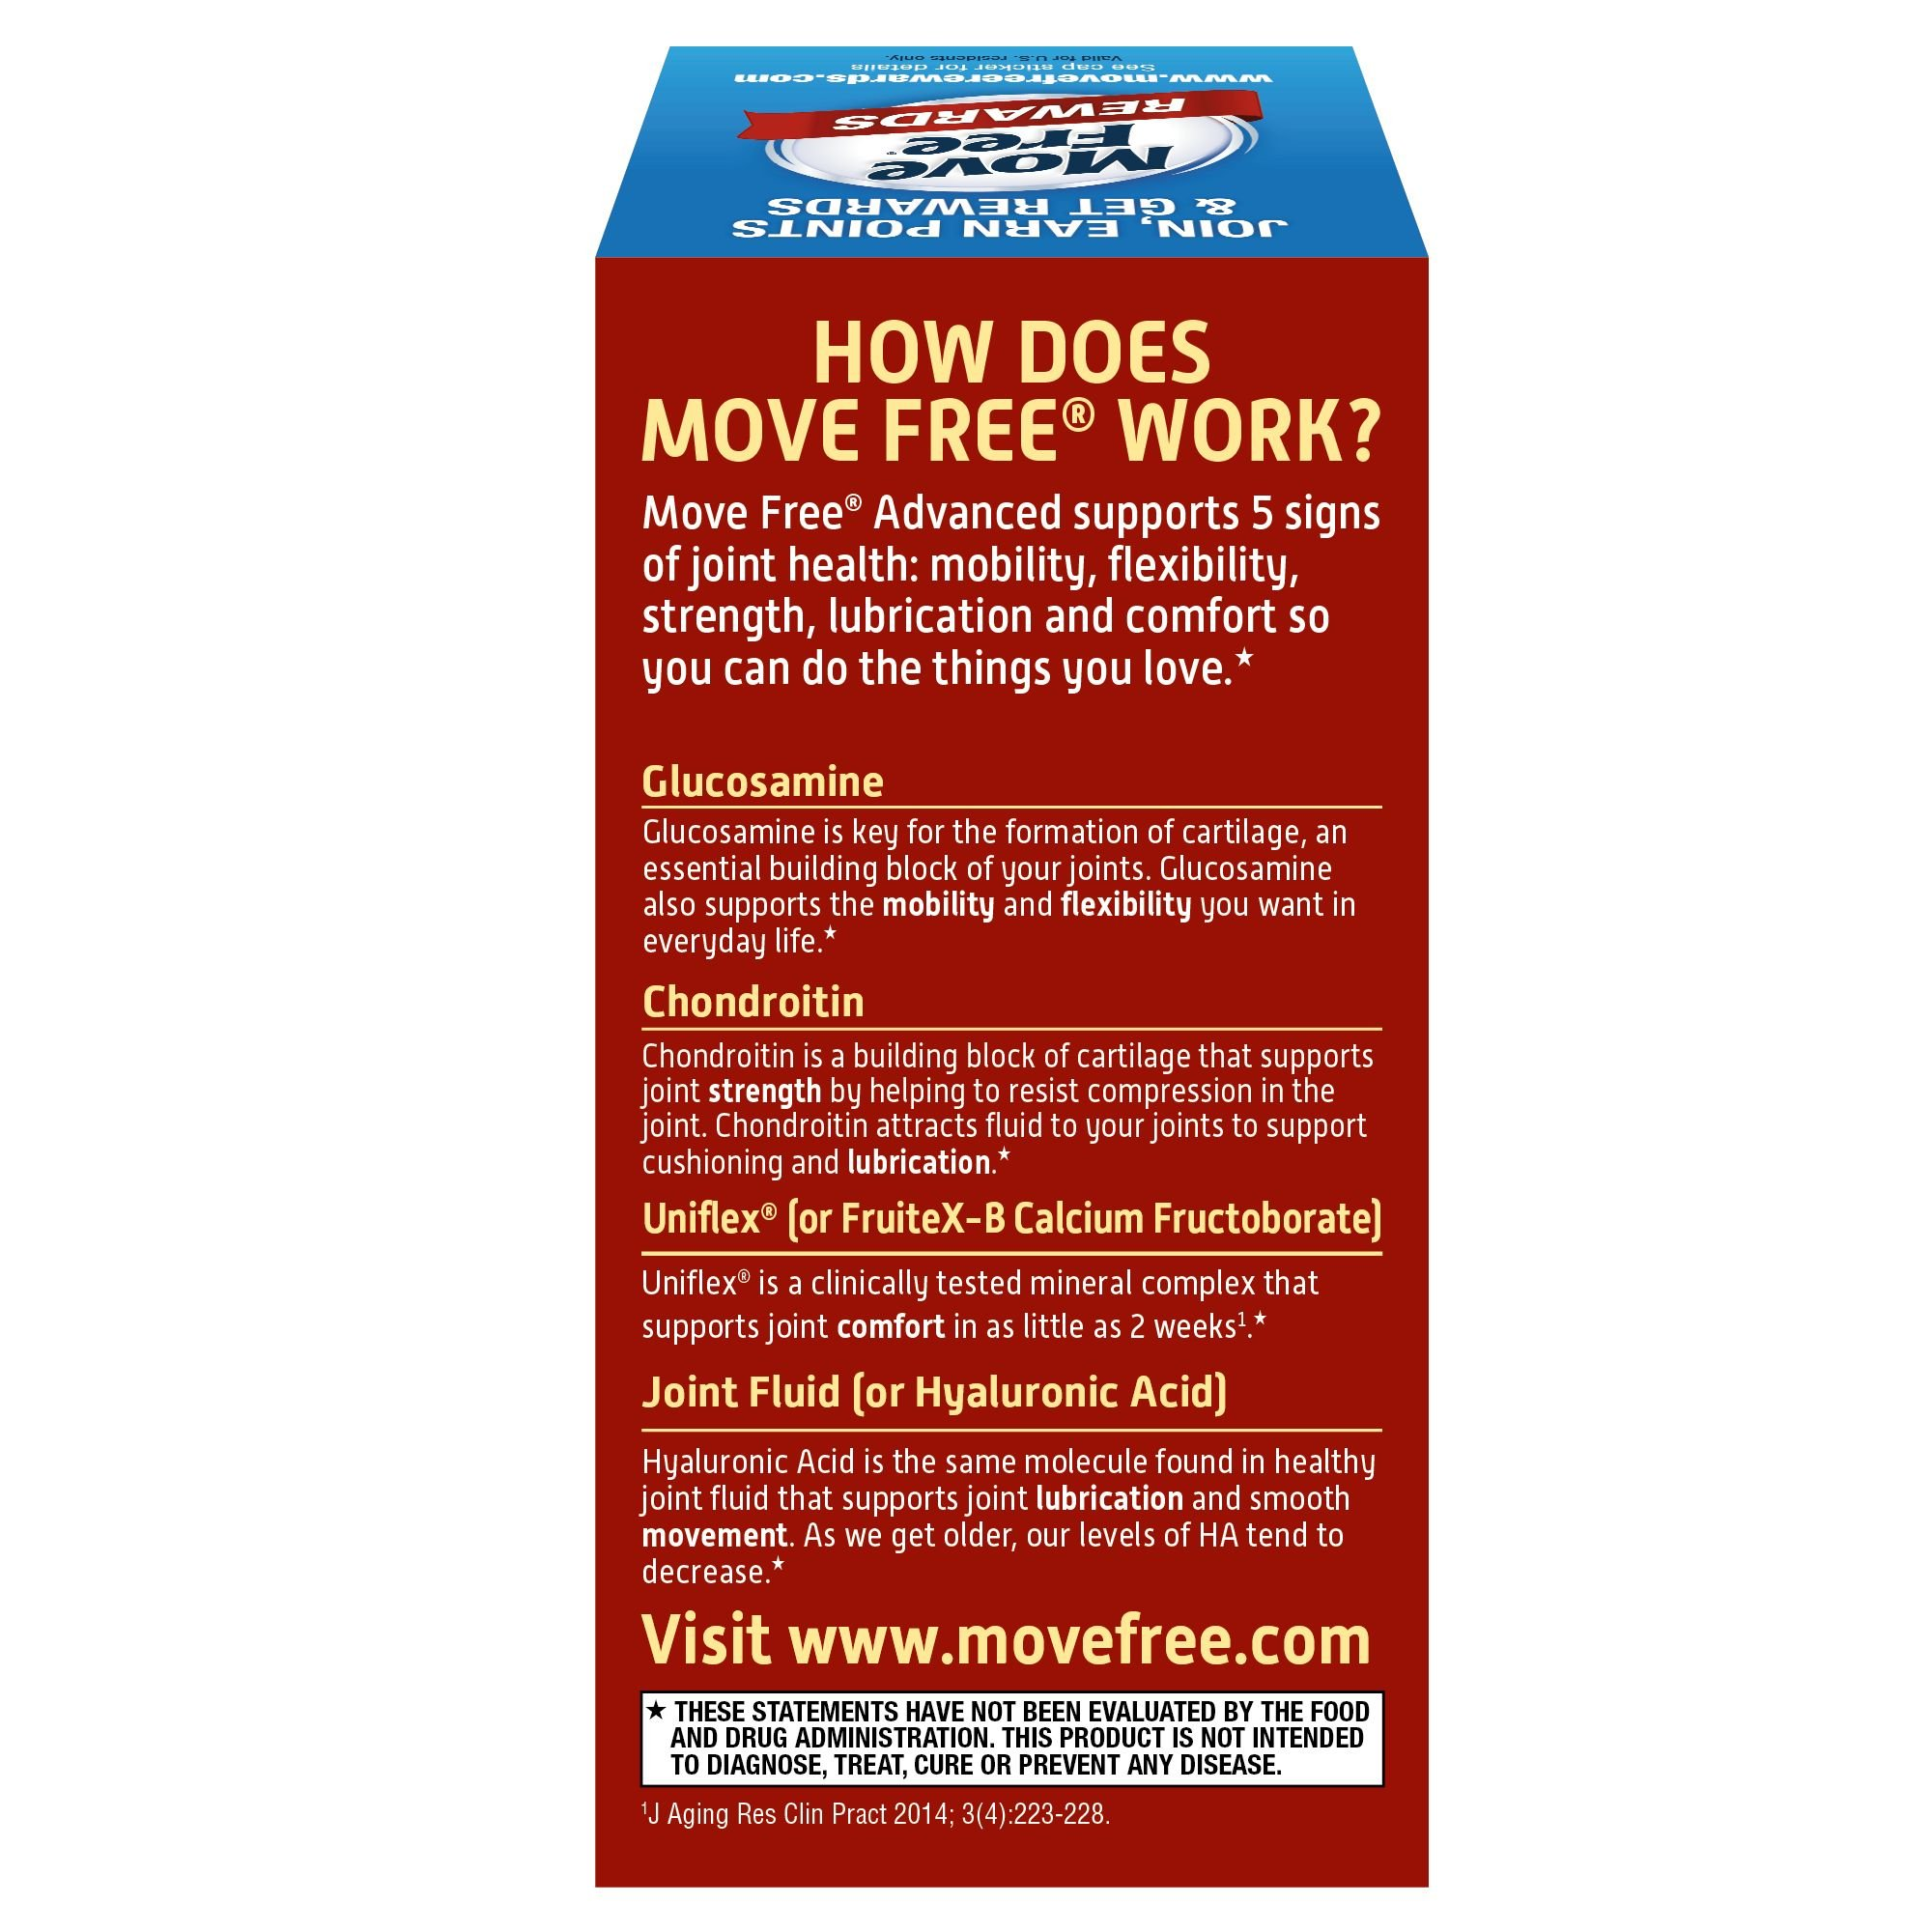 Glucosamine & Chondroitin Advanced Joint Health Supplement Tablets, Move Free (200 count in a bottle), Supports Mobility, Flexibility, Strength, Lubrication and Comfort by Move Free (Image #10)